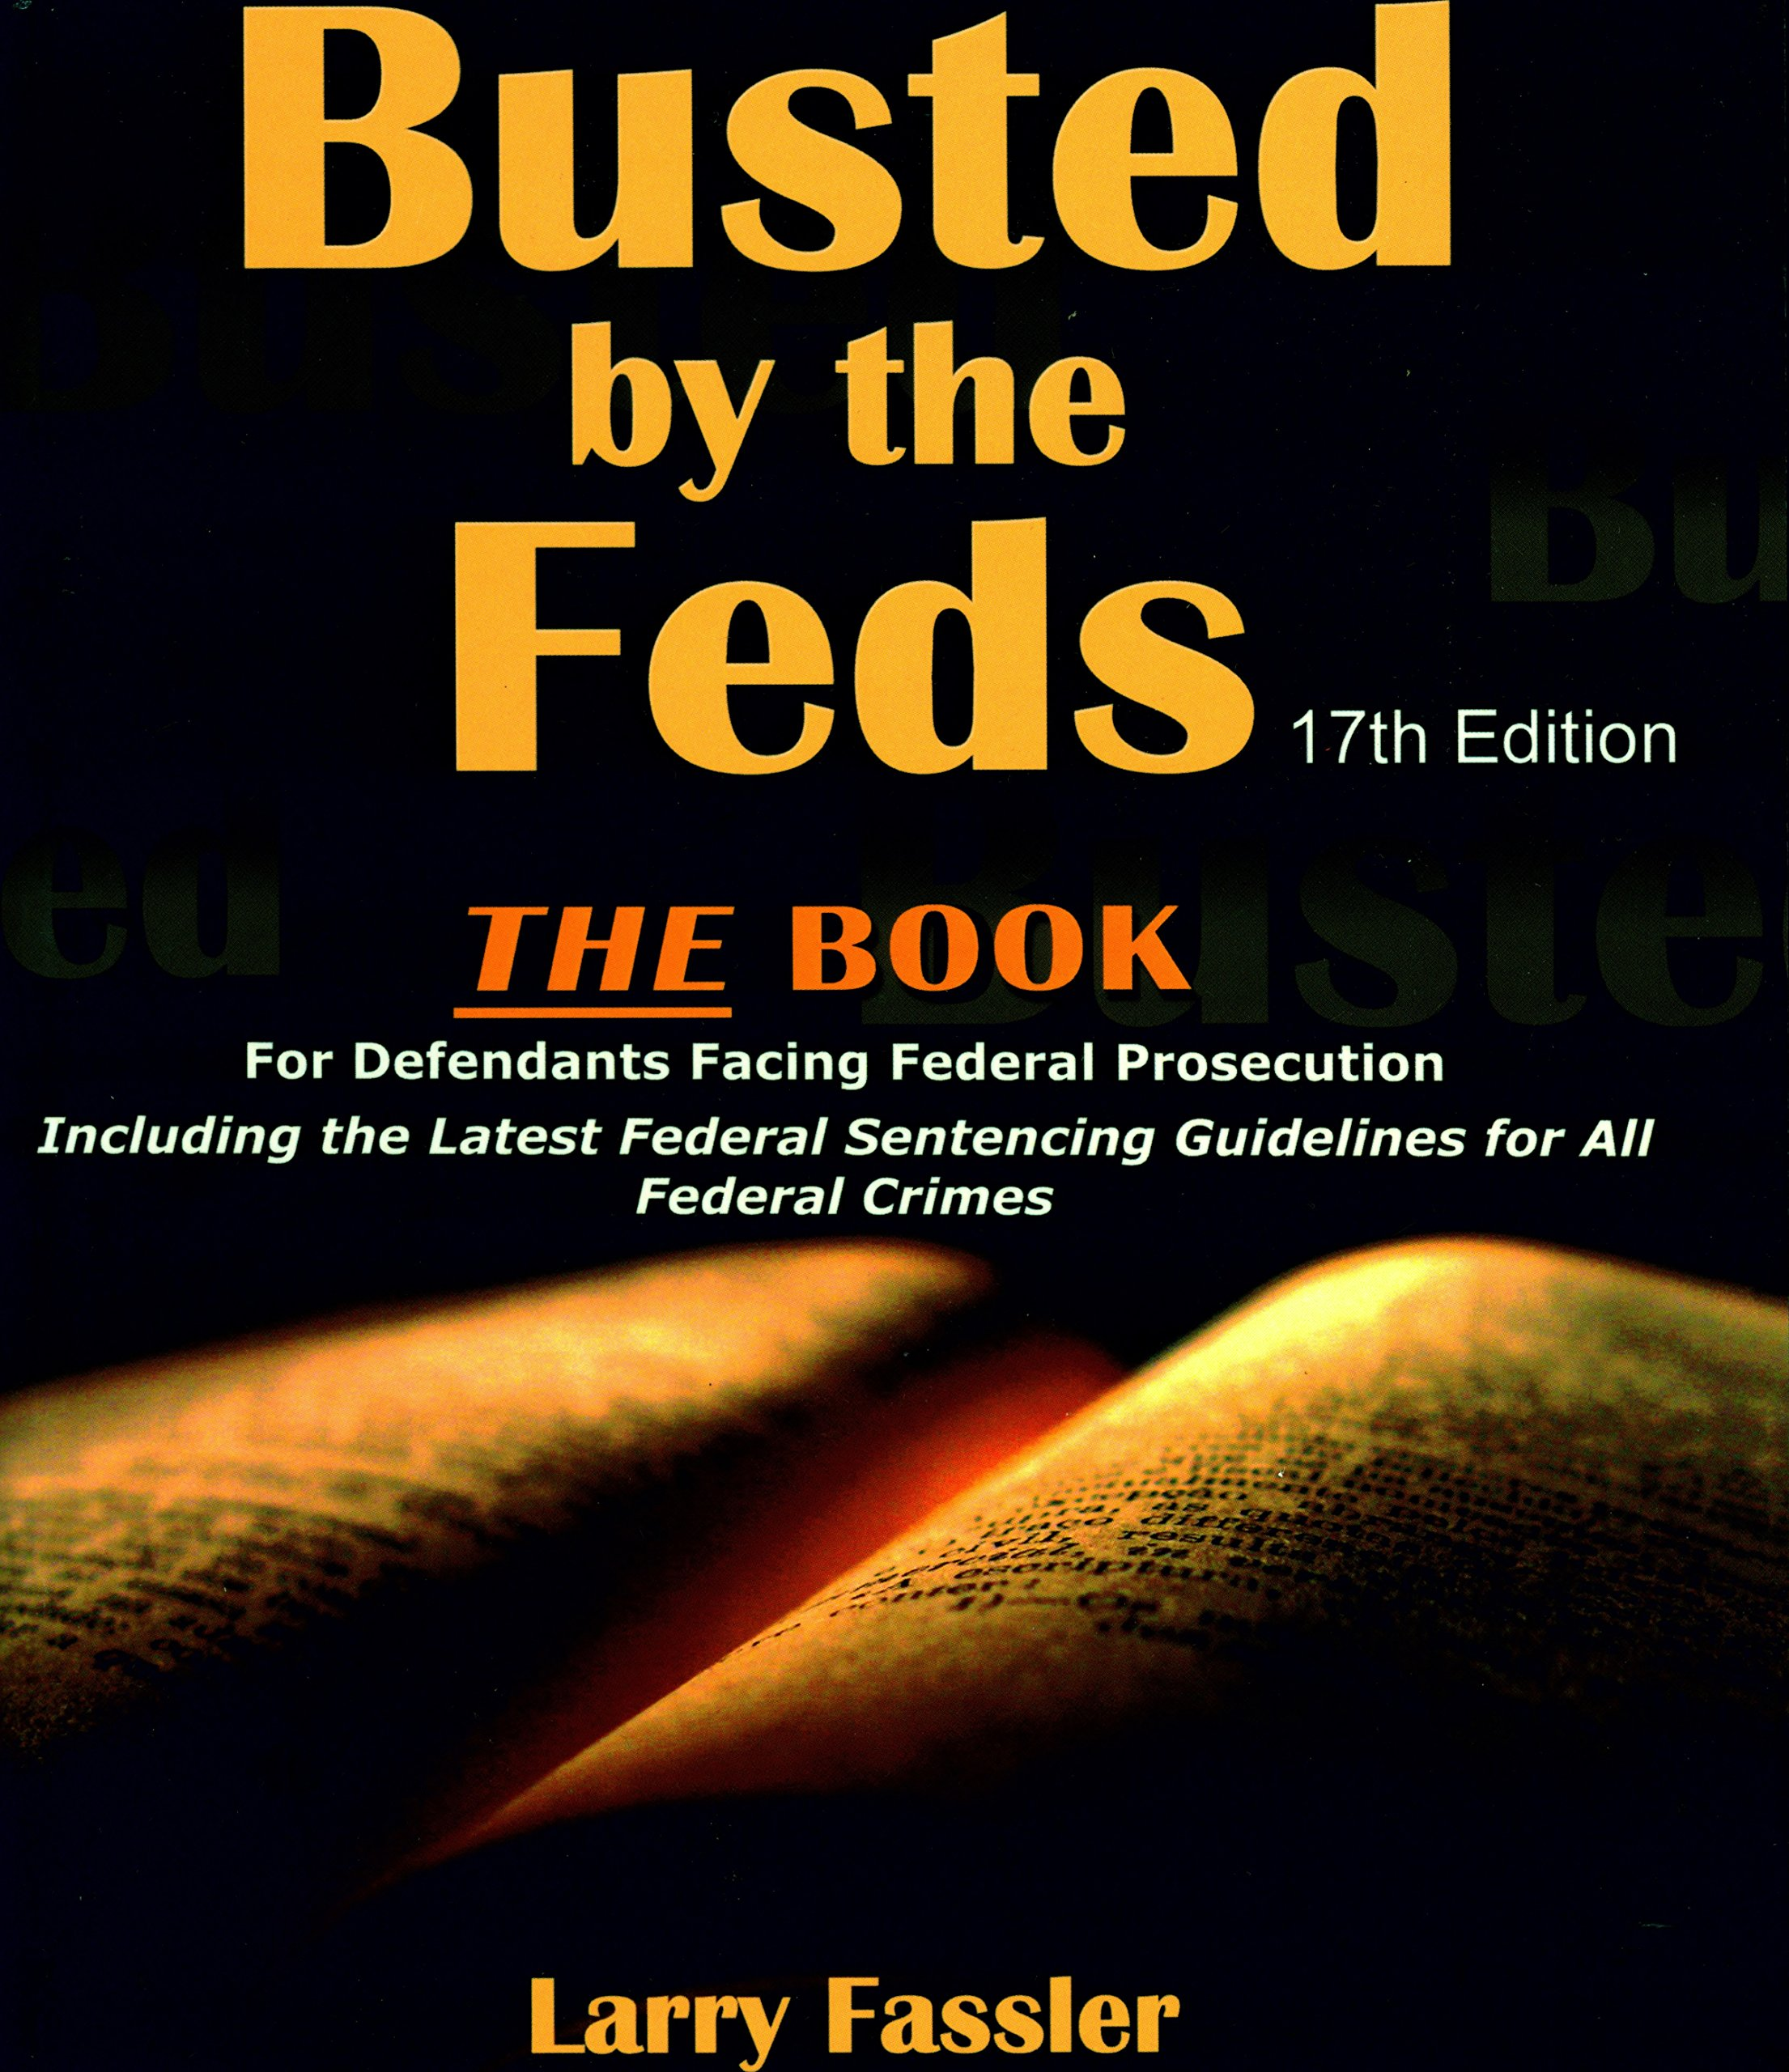 Busted By The Feds 2017 17th Edition The Book For Defendants Facing Federal Prosecution Including The Latest Federal Sentencing Guidelines For All Federal Crimes Larry Fassler 9780984338382 Amazon Com Books